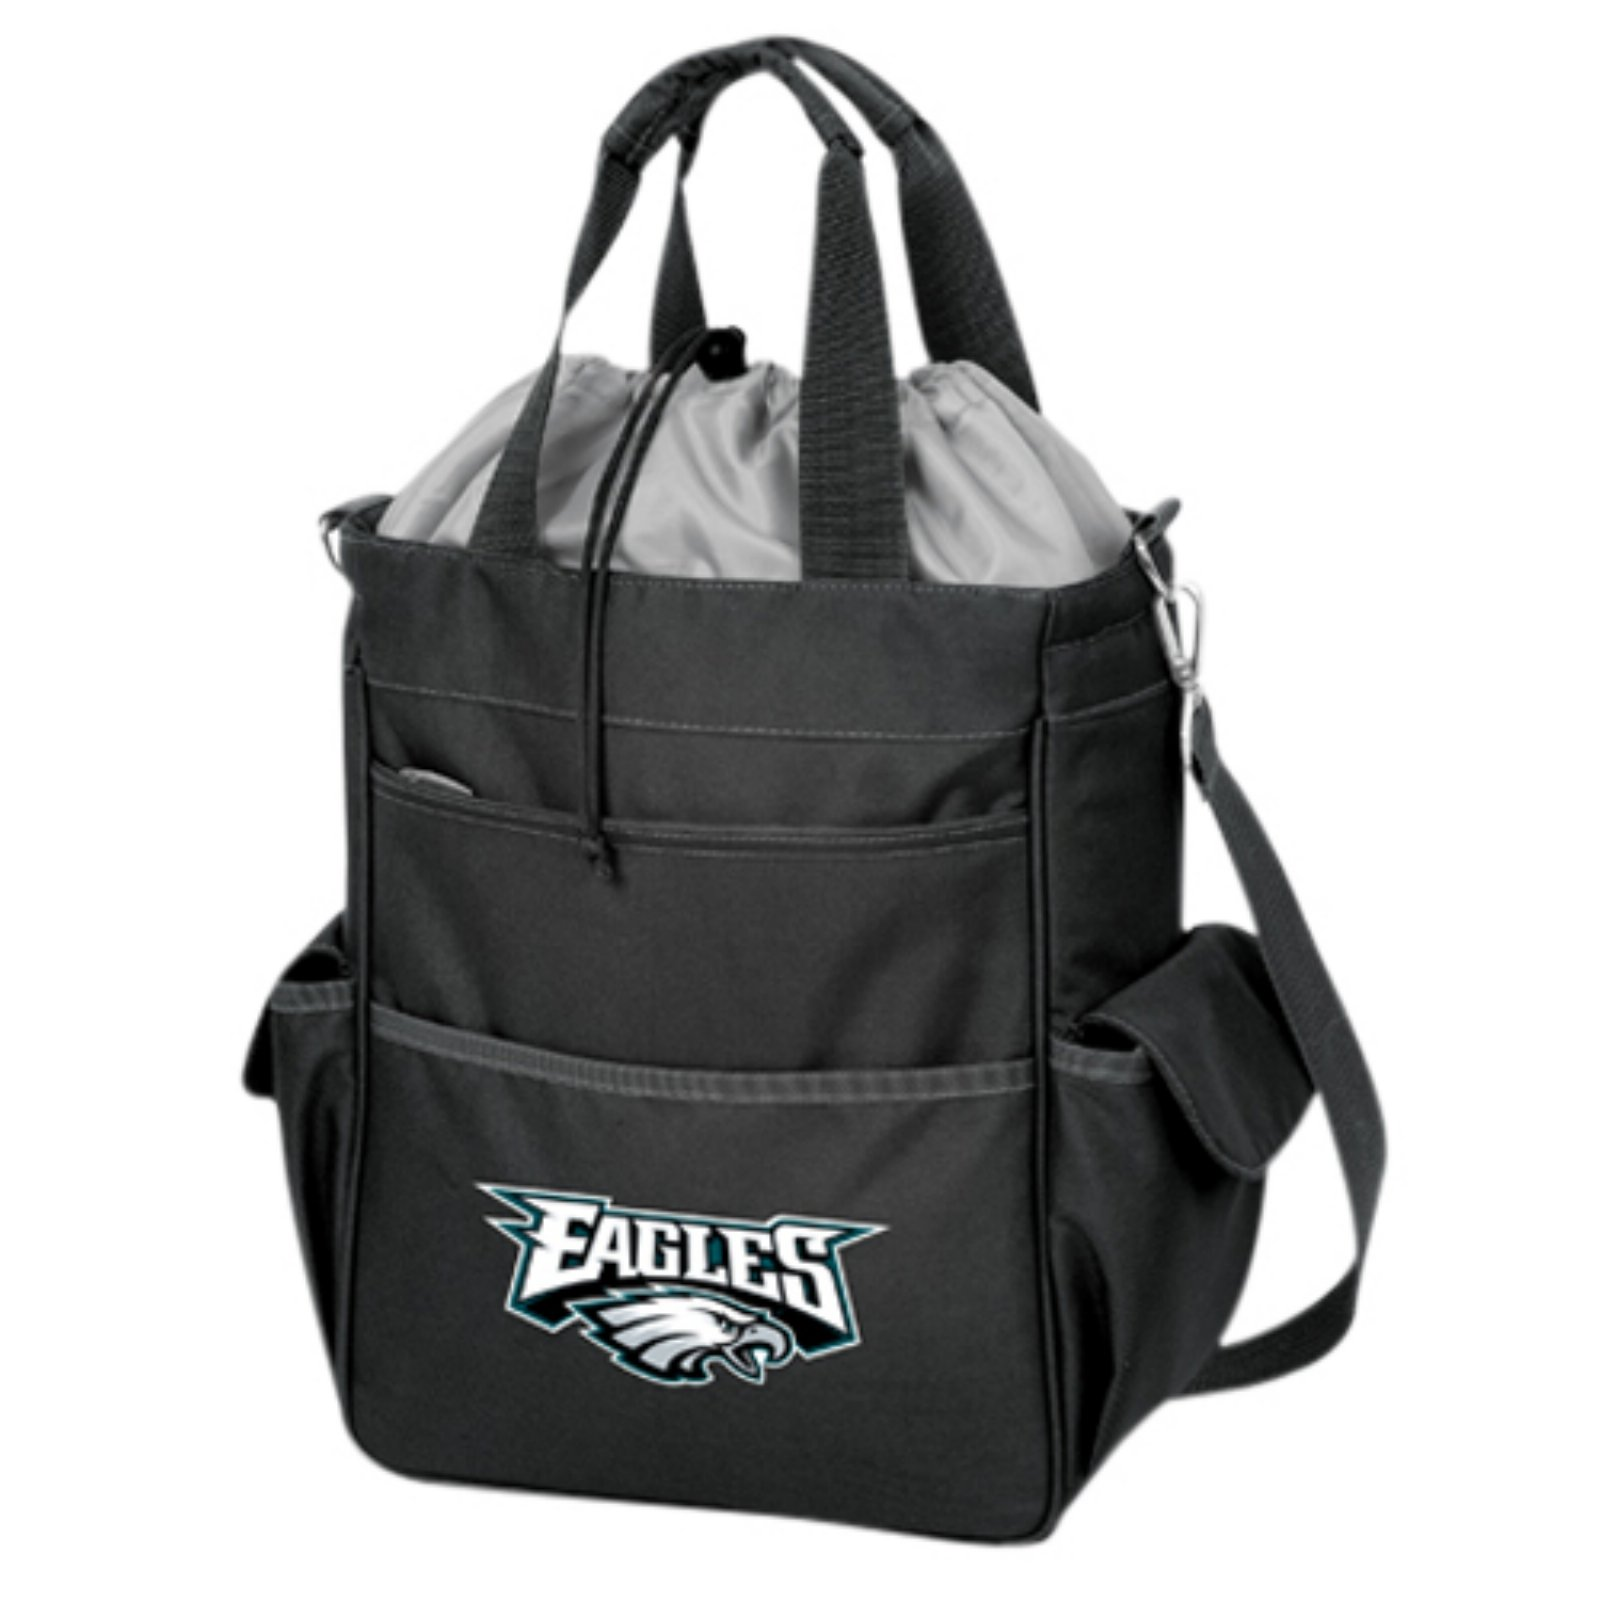 Picnic Time Activo, Black Philadelphia Eagles Digital Print